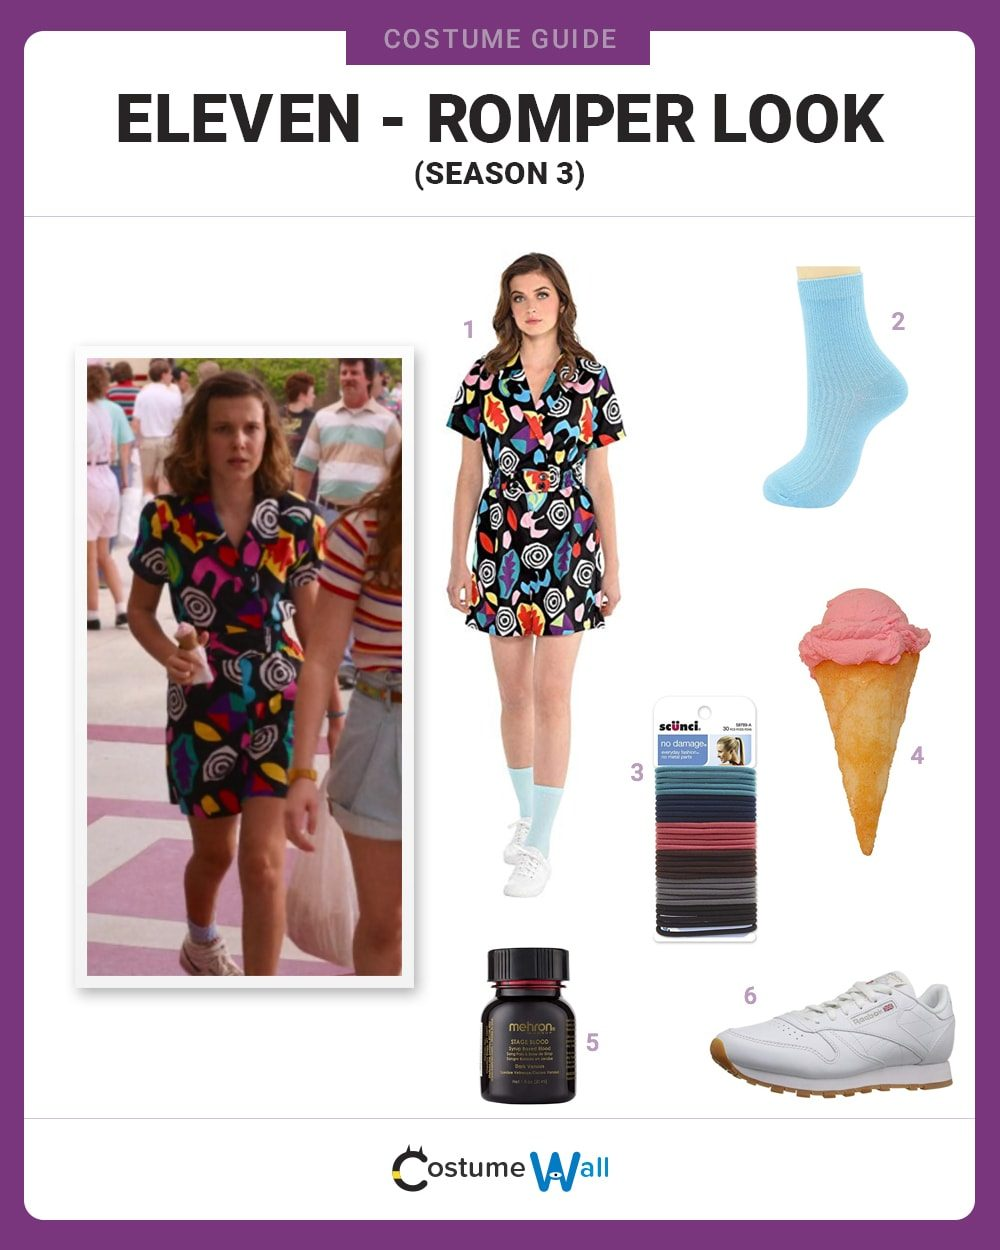 Eleven (Romper Look) Costume Guide